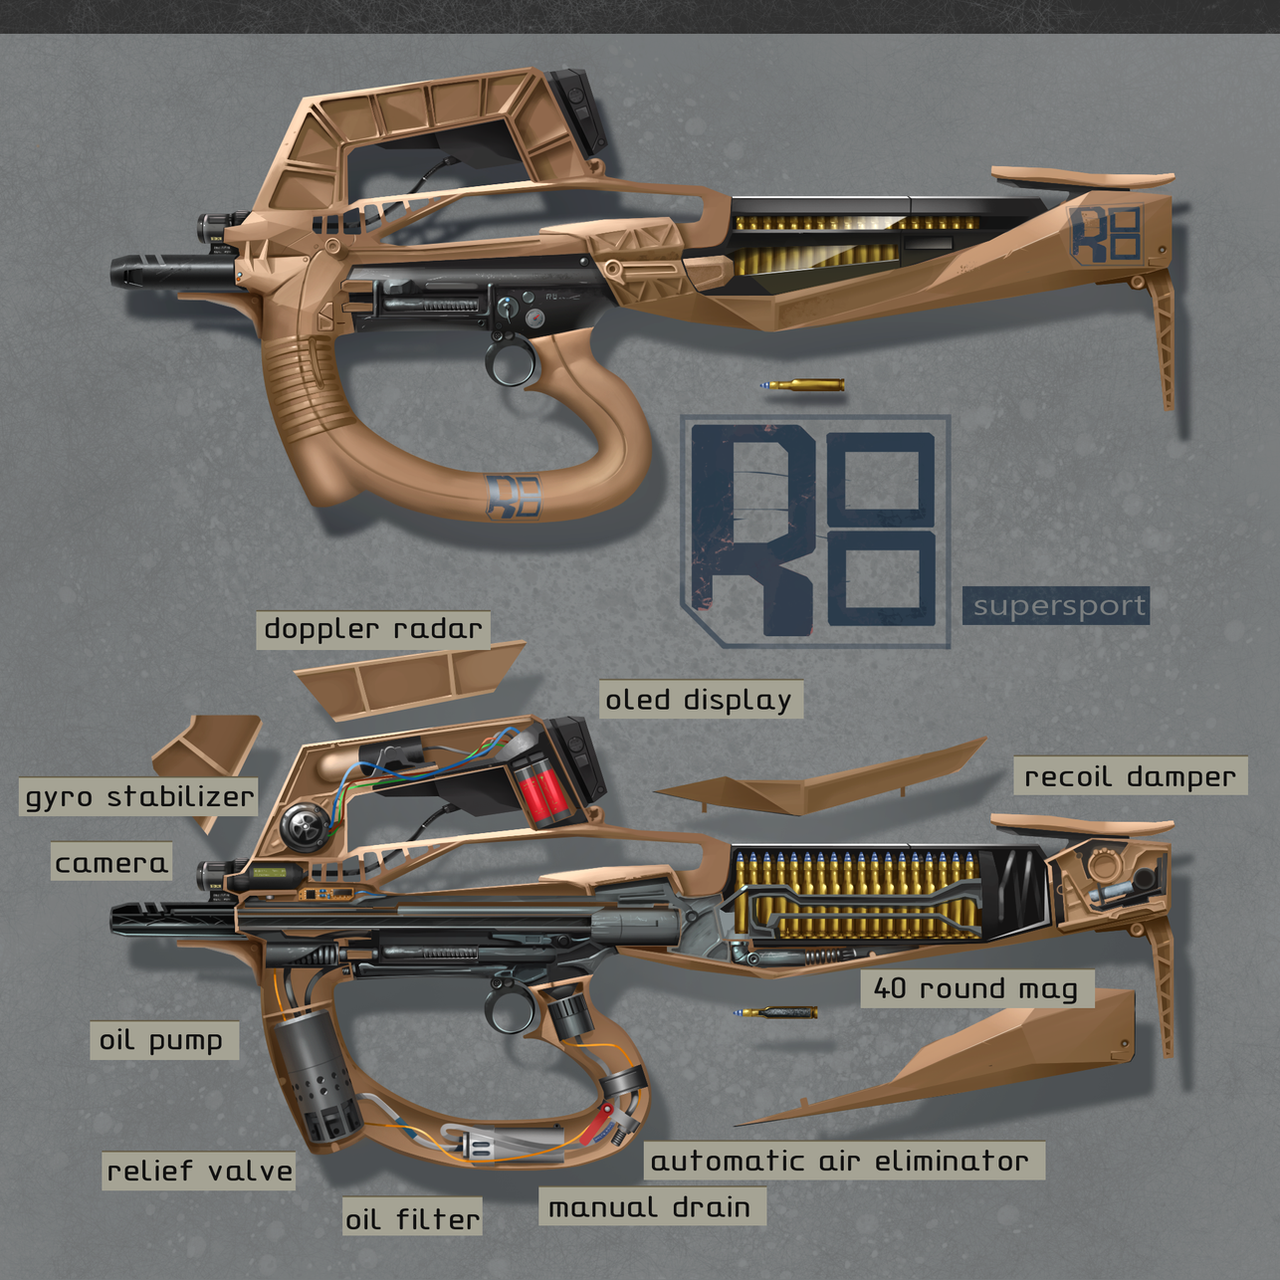 R8 supersport assault rifle by xparament